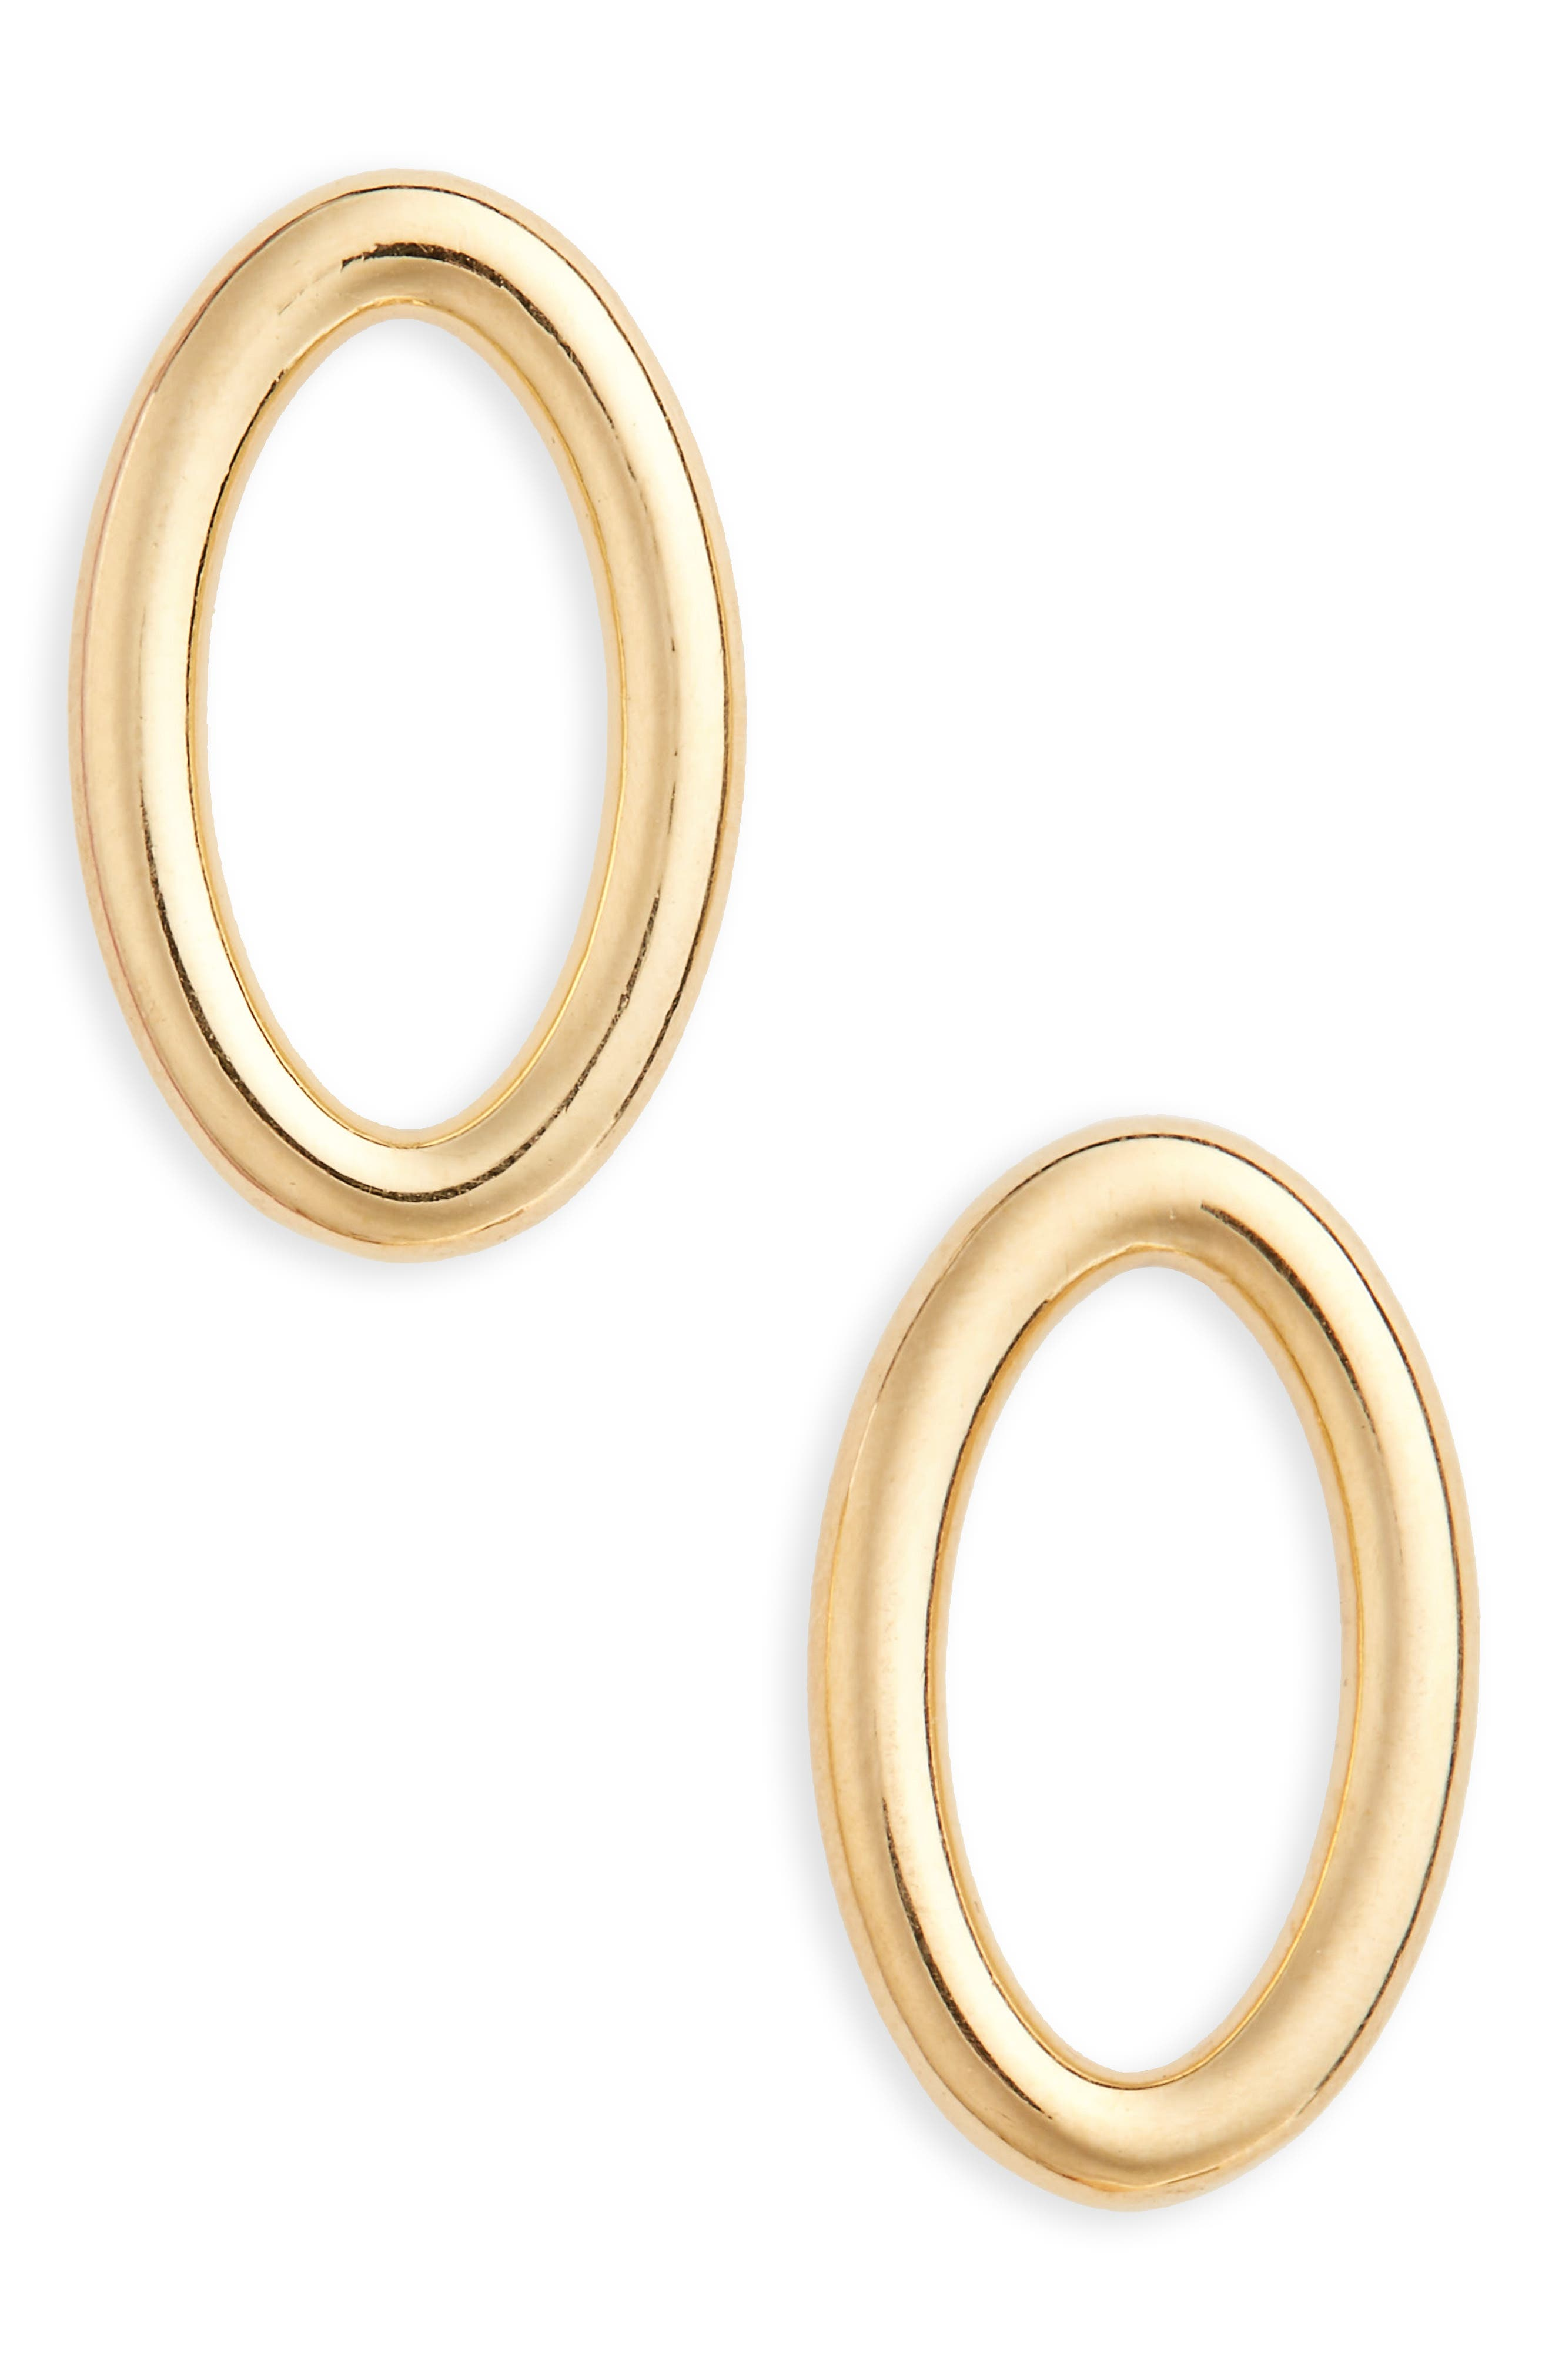 Small Ellipse Polished Earrings,                             Main thumbnail 1, color,                             Polished Vermeil